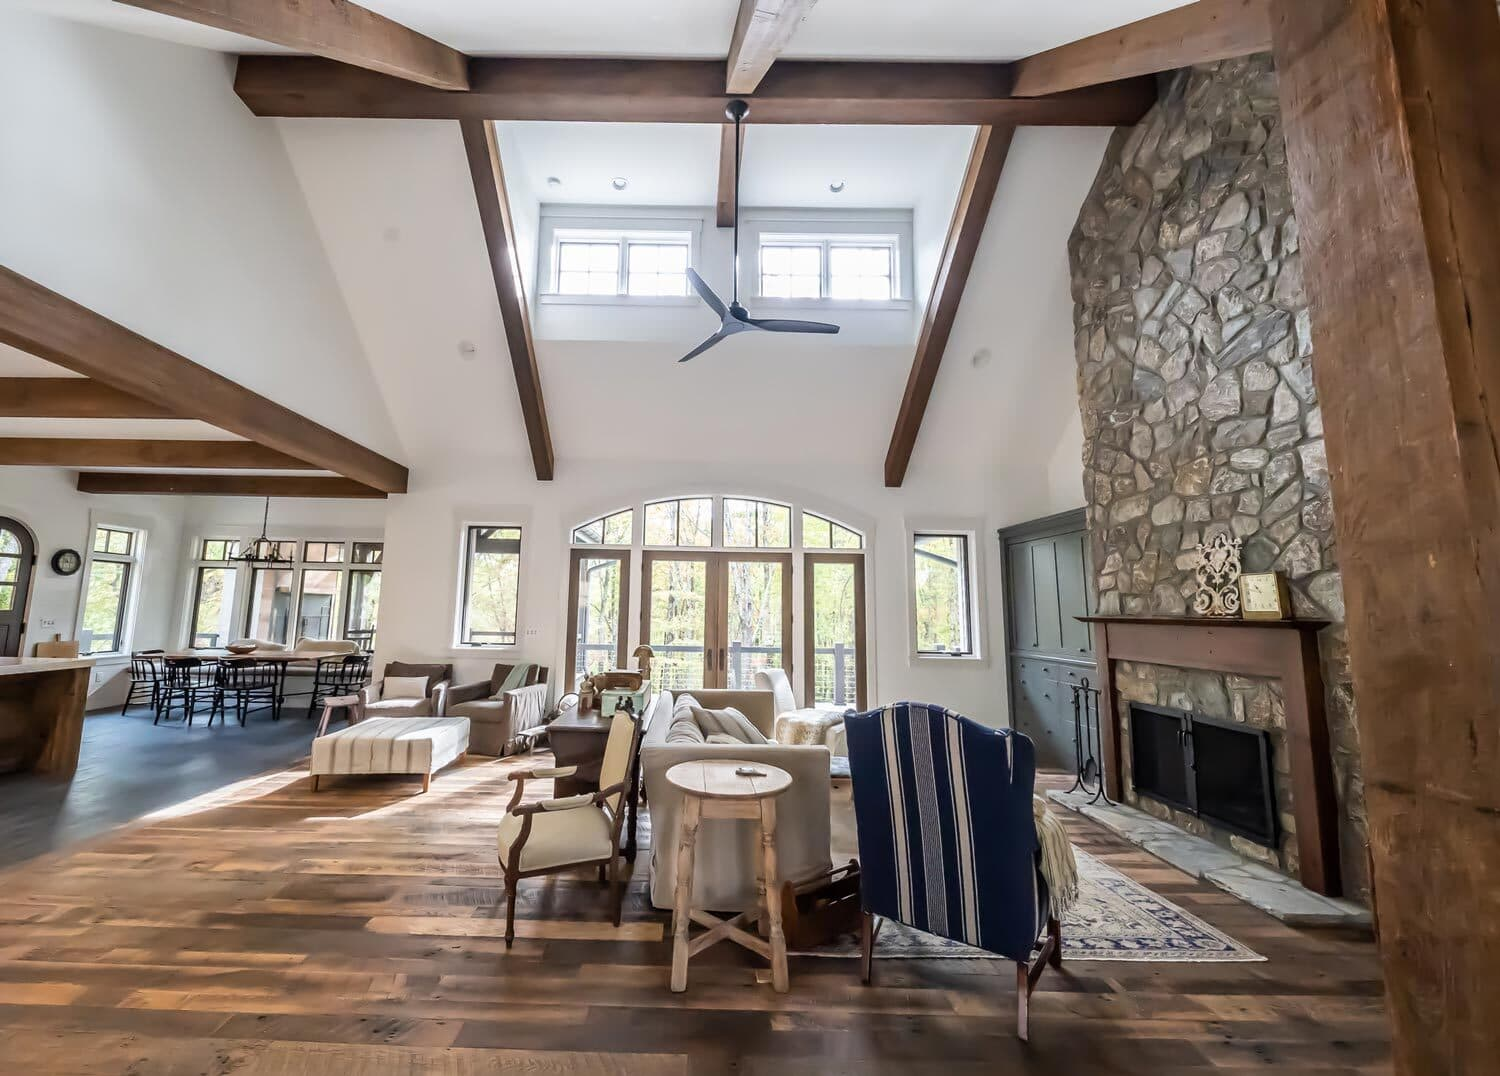 Example of reclaimed wood throughout a great room.